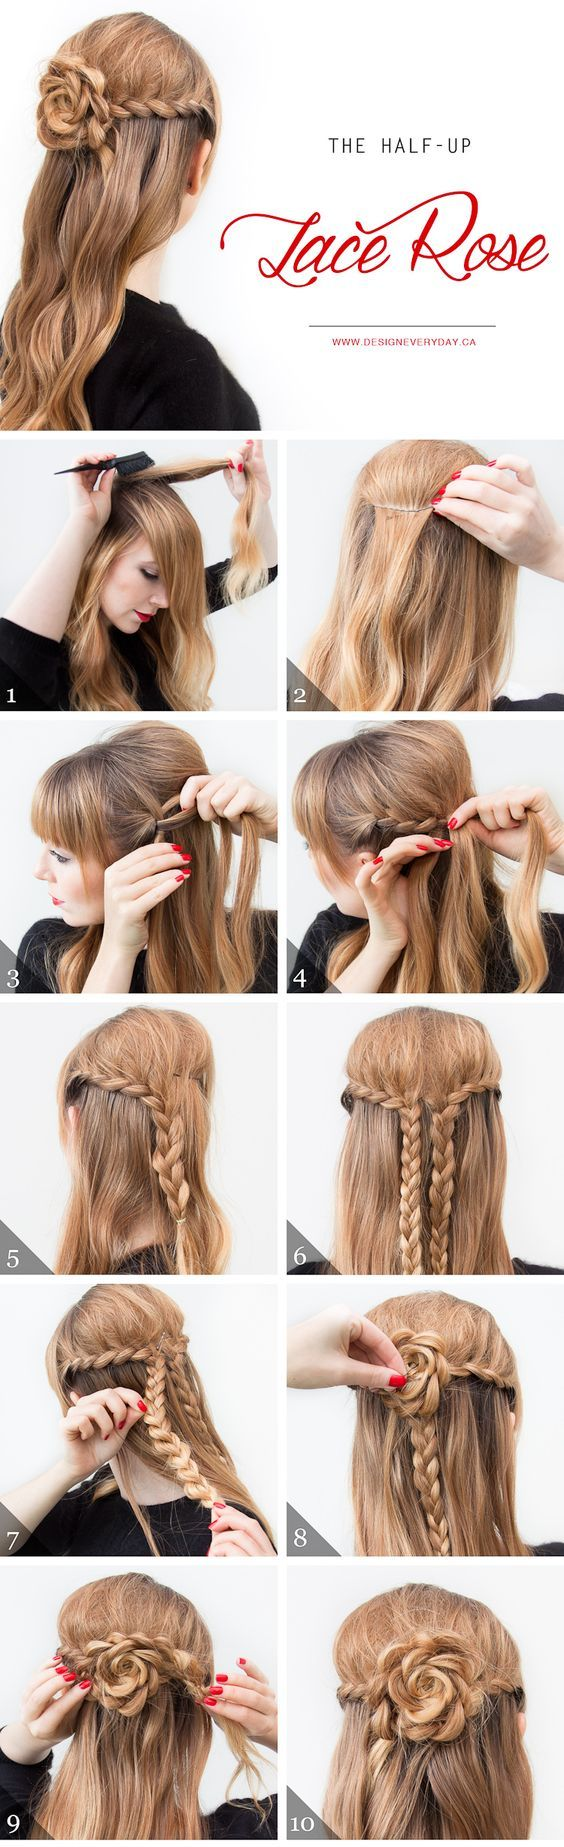 best 25+ hairstyle tutorials ideas on pinterest | braided